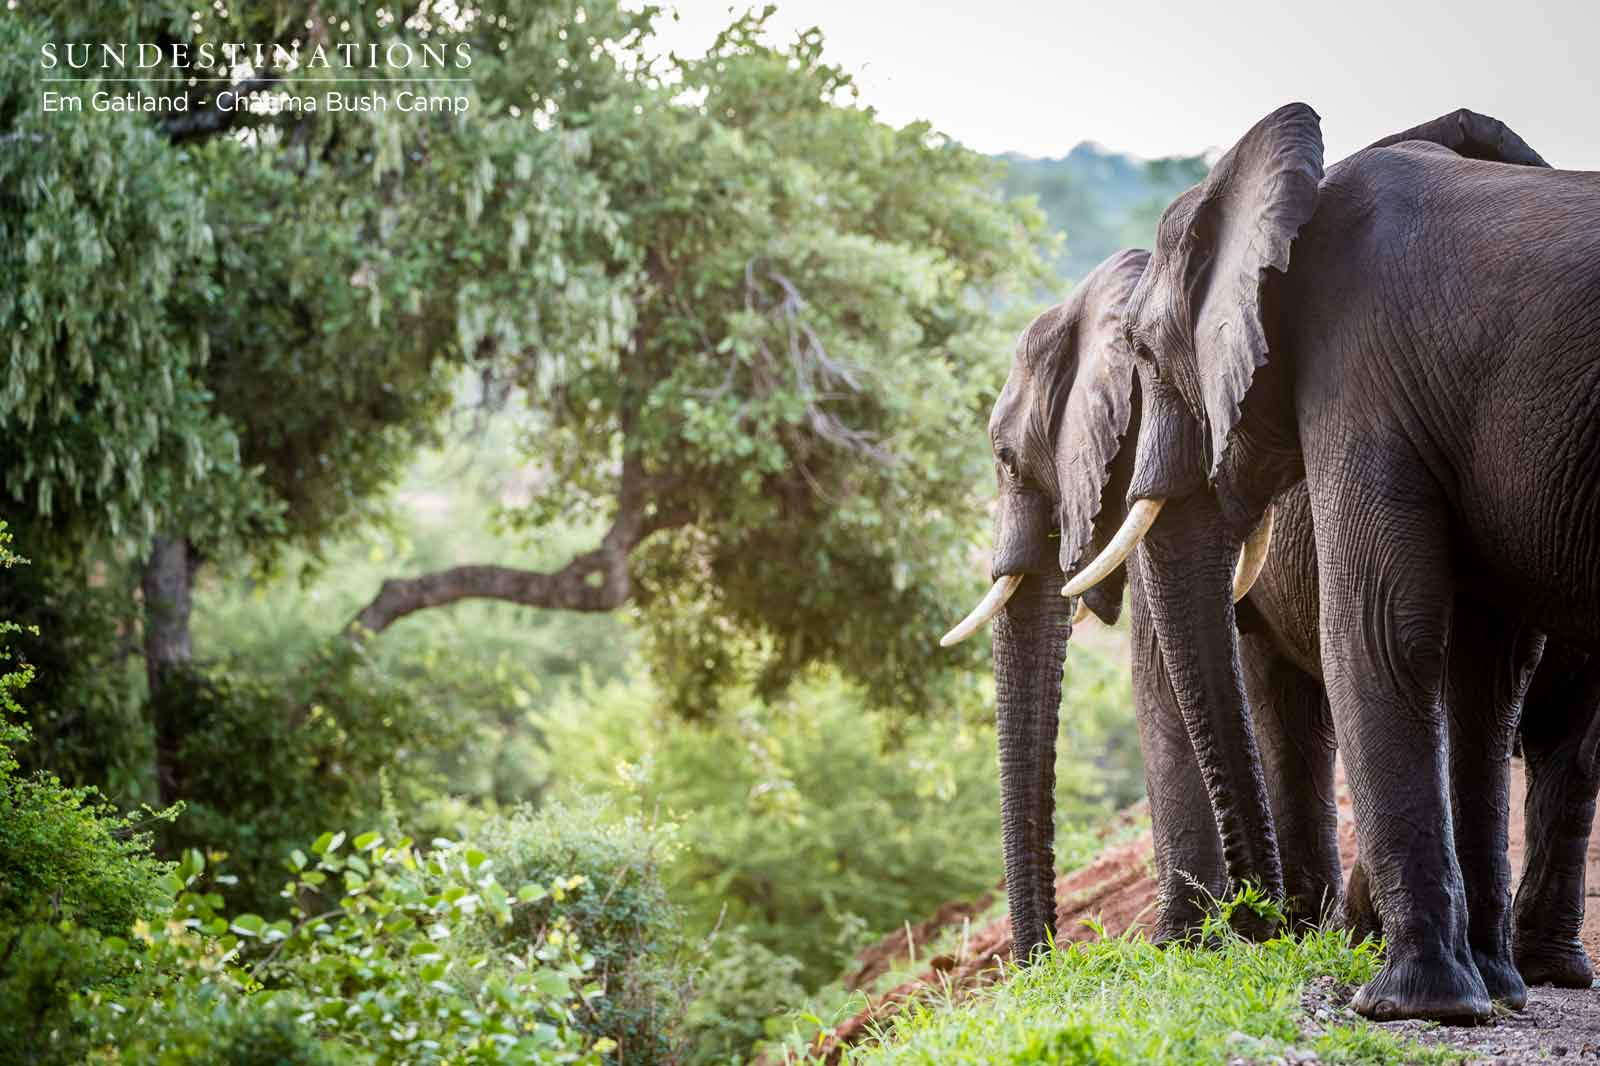 The Week in Pictures : Elephants Gorge on Marula Fruits